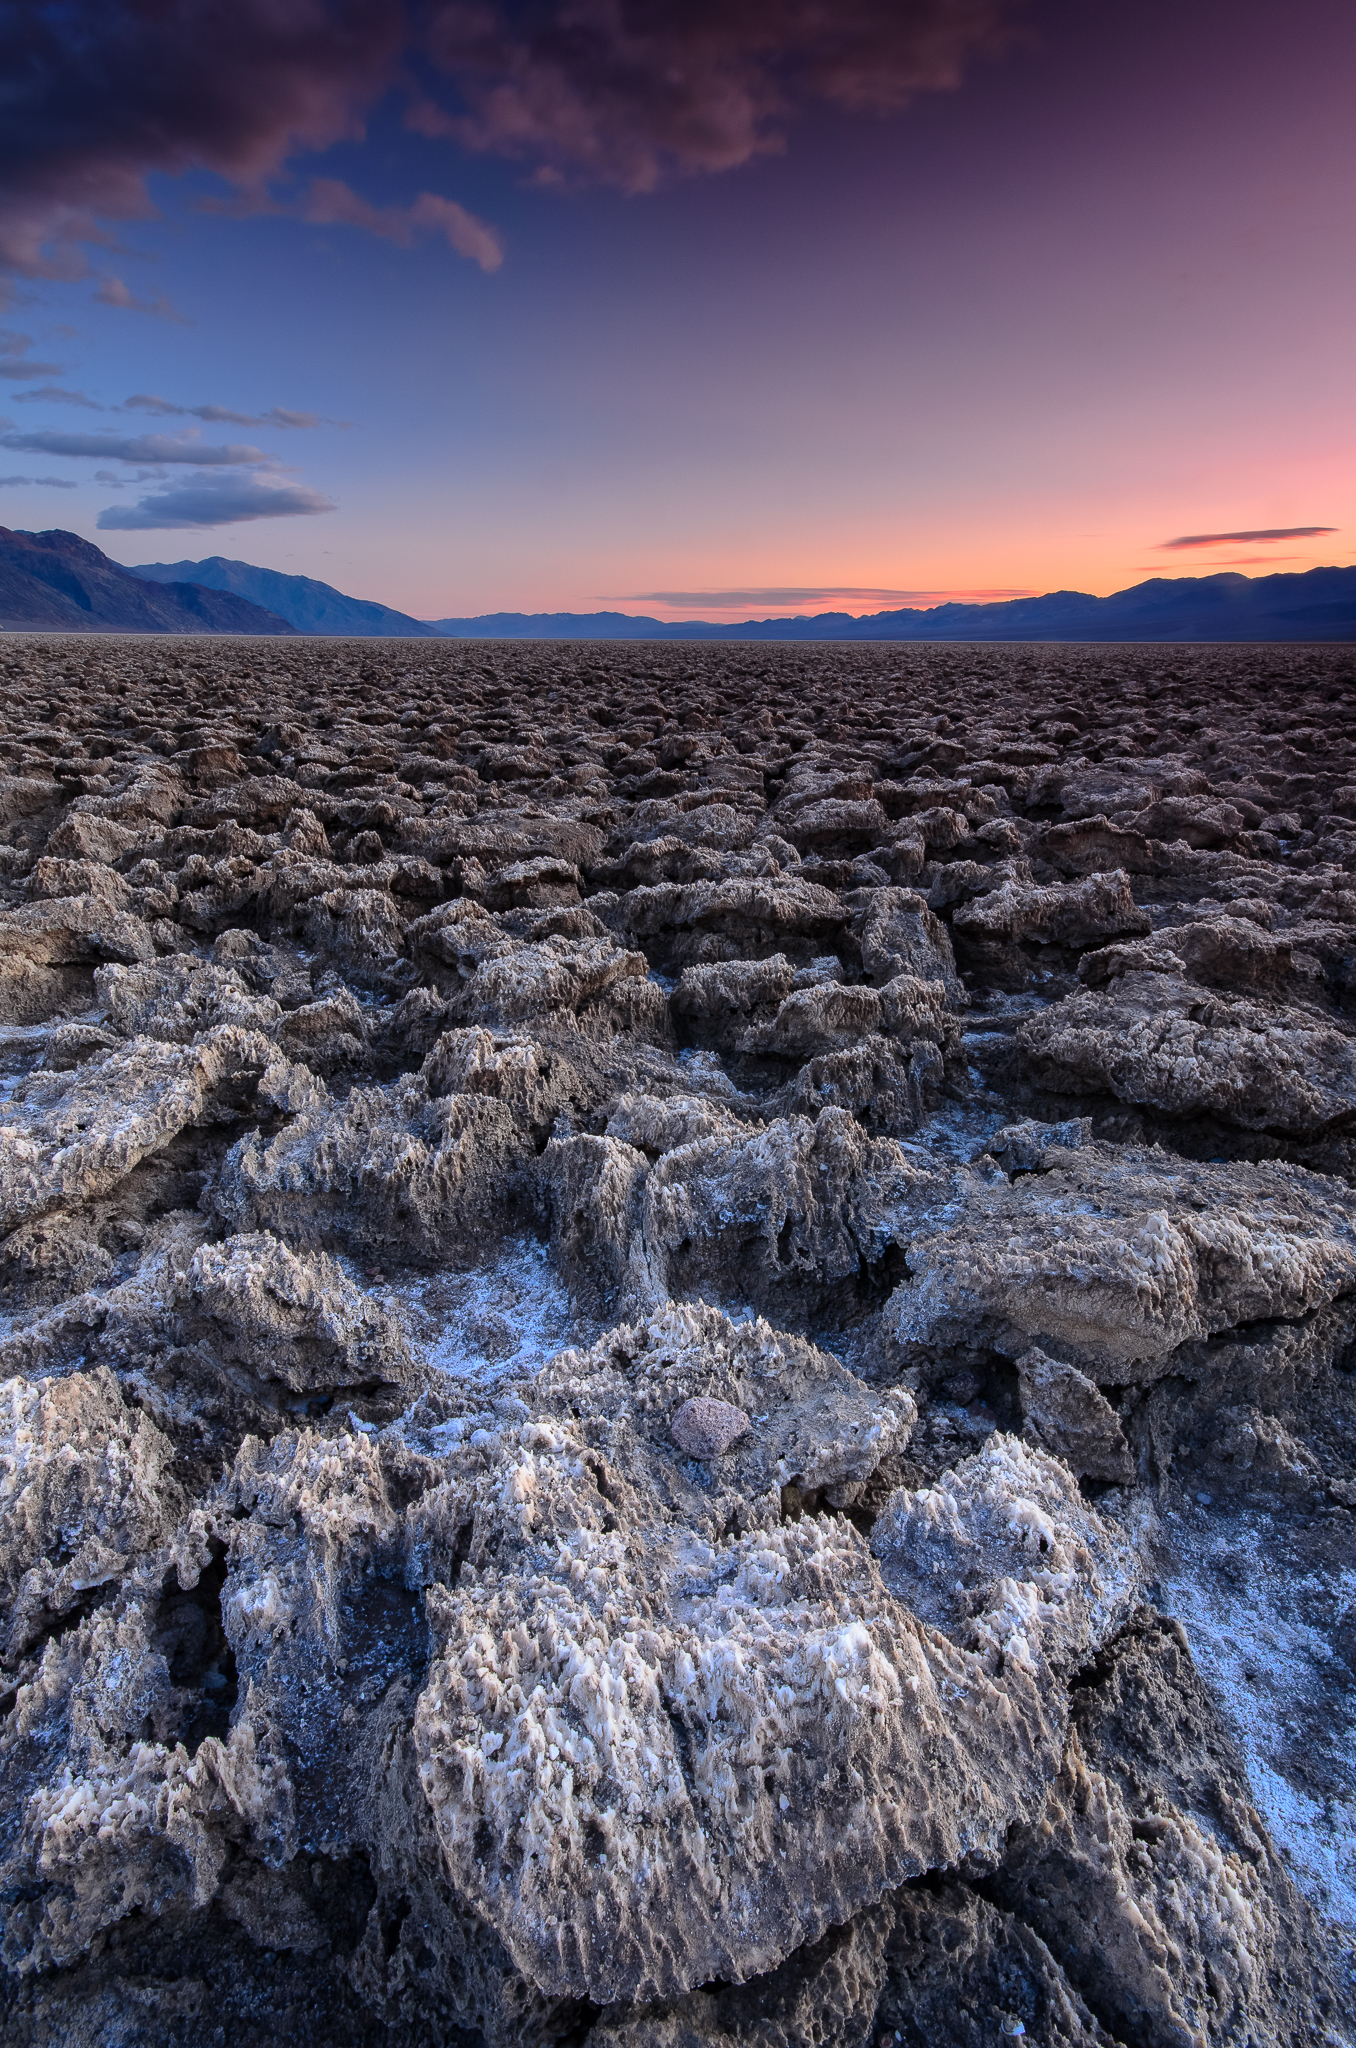 Jagged salt crystals warn xplorers to watch their step.  Devil's Golf Course, Death Valley CA